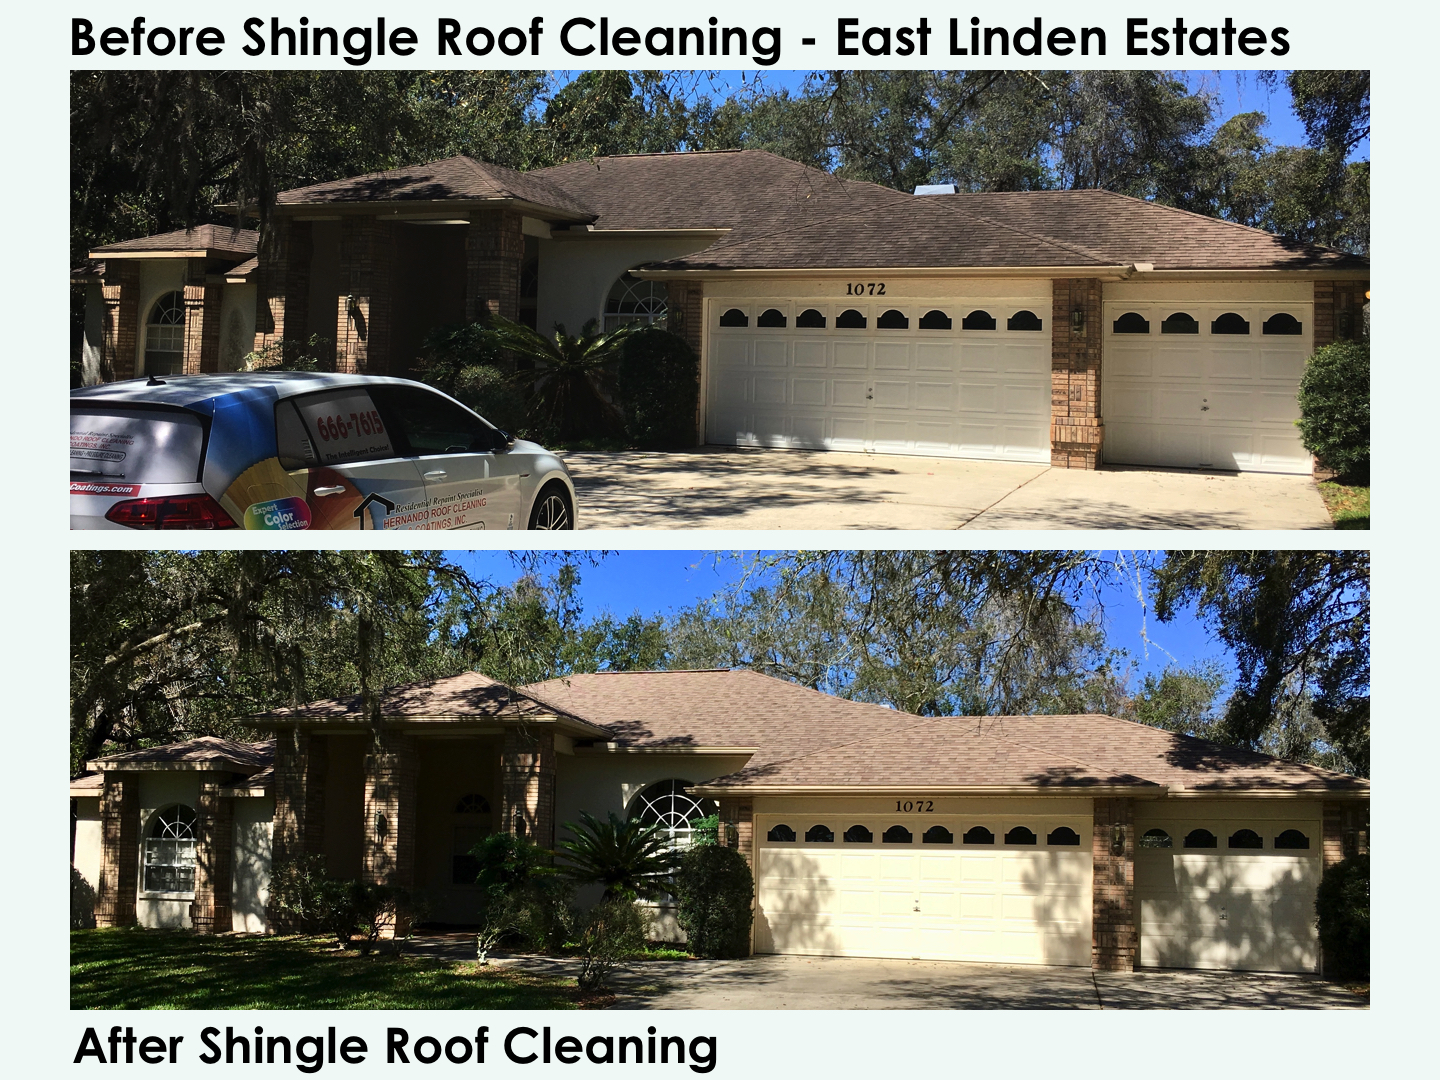 before after shingle roof cleaning east linden estates - Roof Cleaning